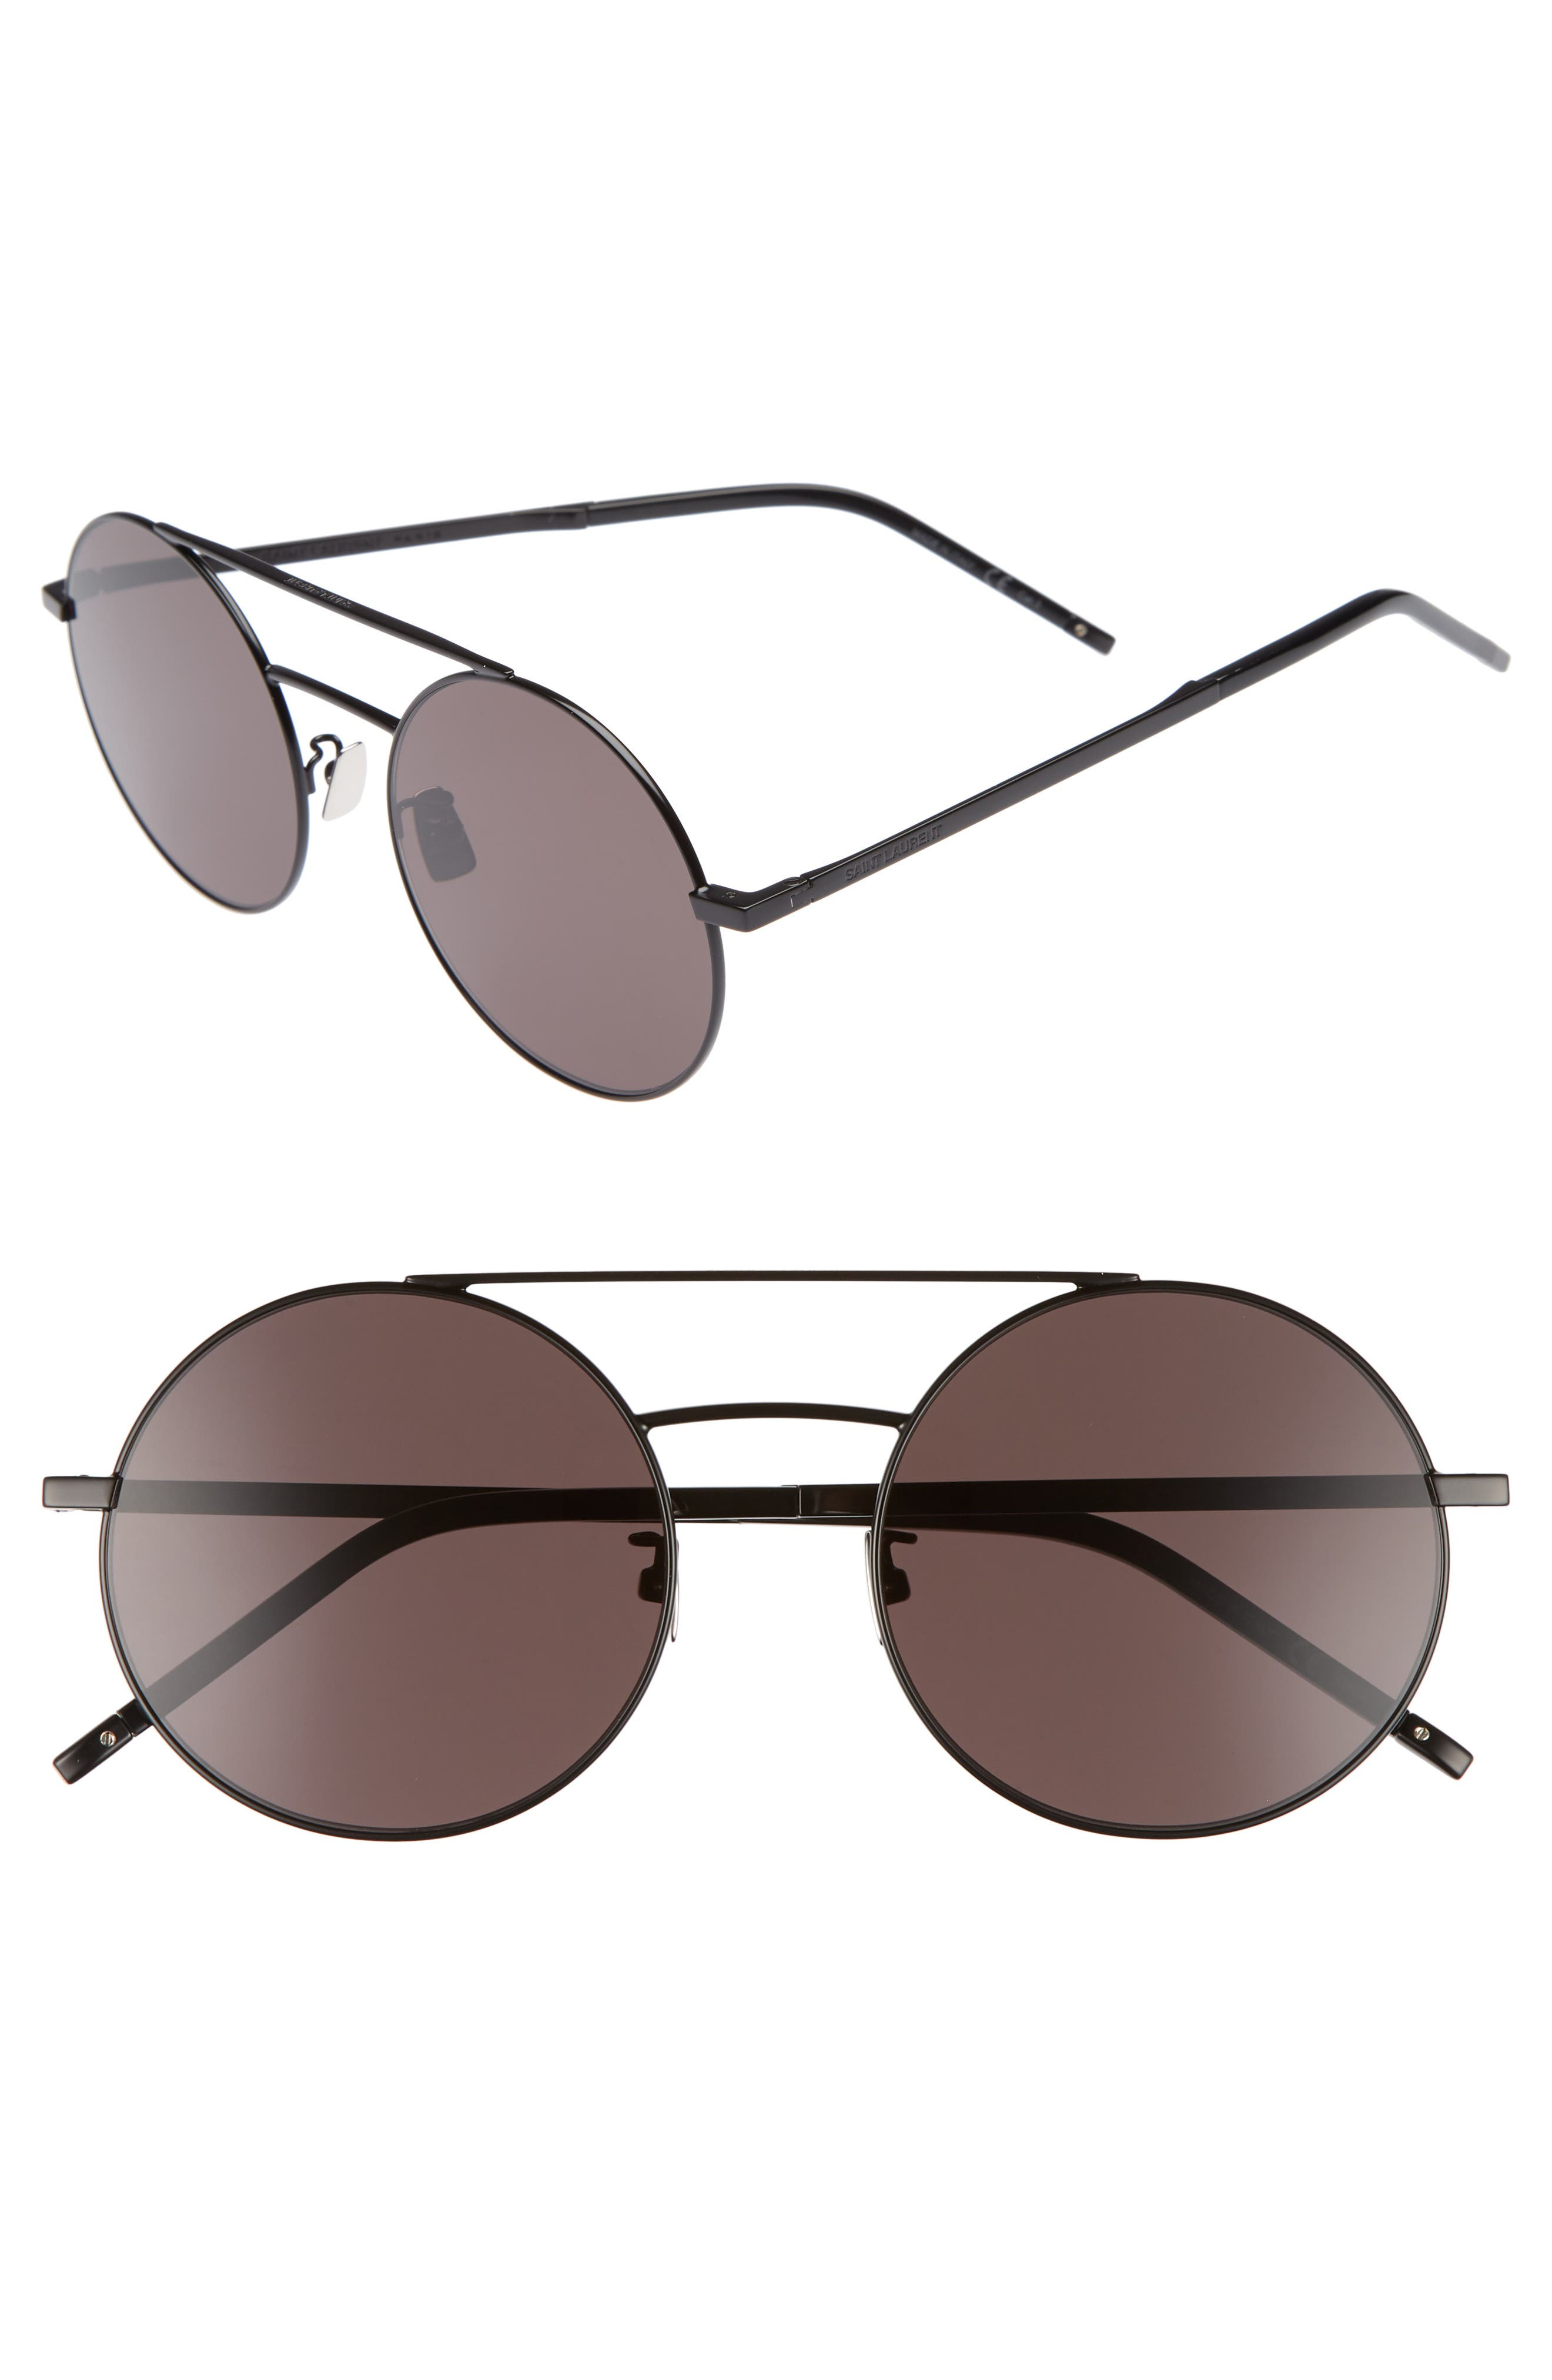 SL 210/F 56mm Round Aviator Sunglasses,                         Main,                         color, Black